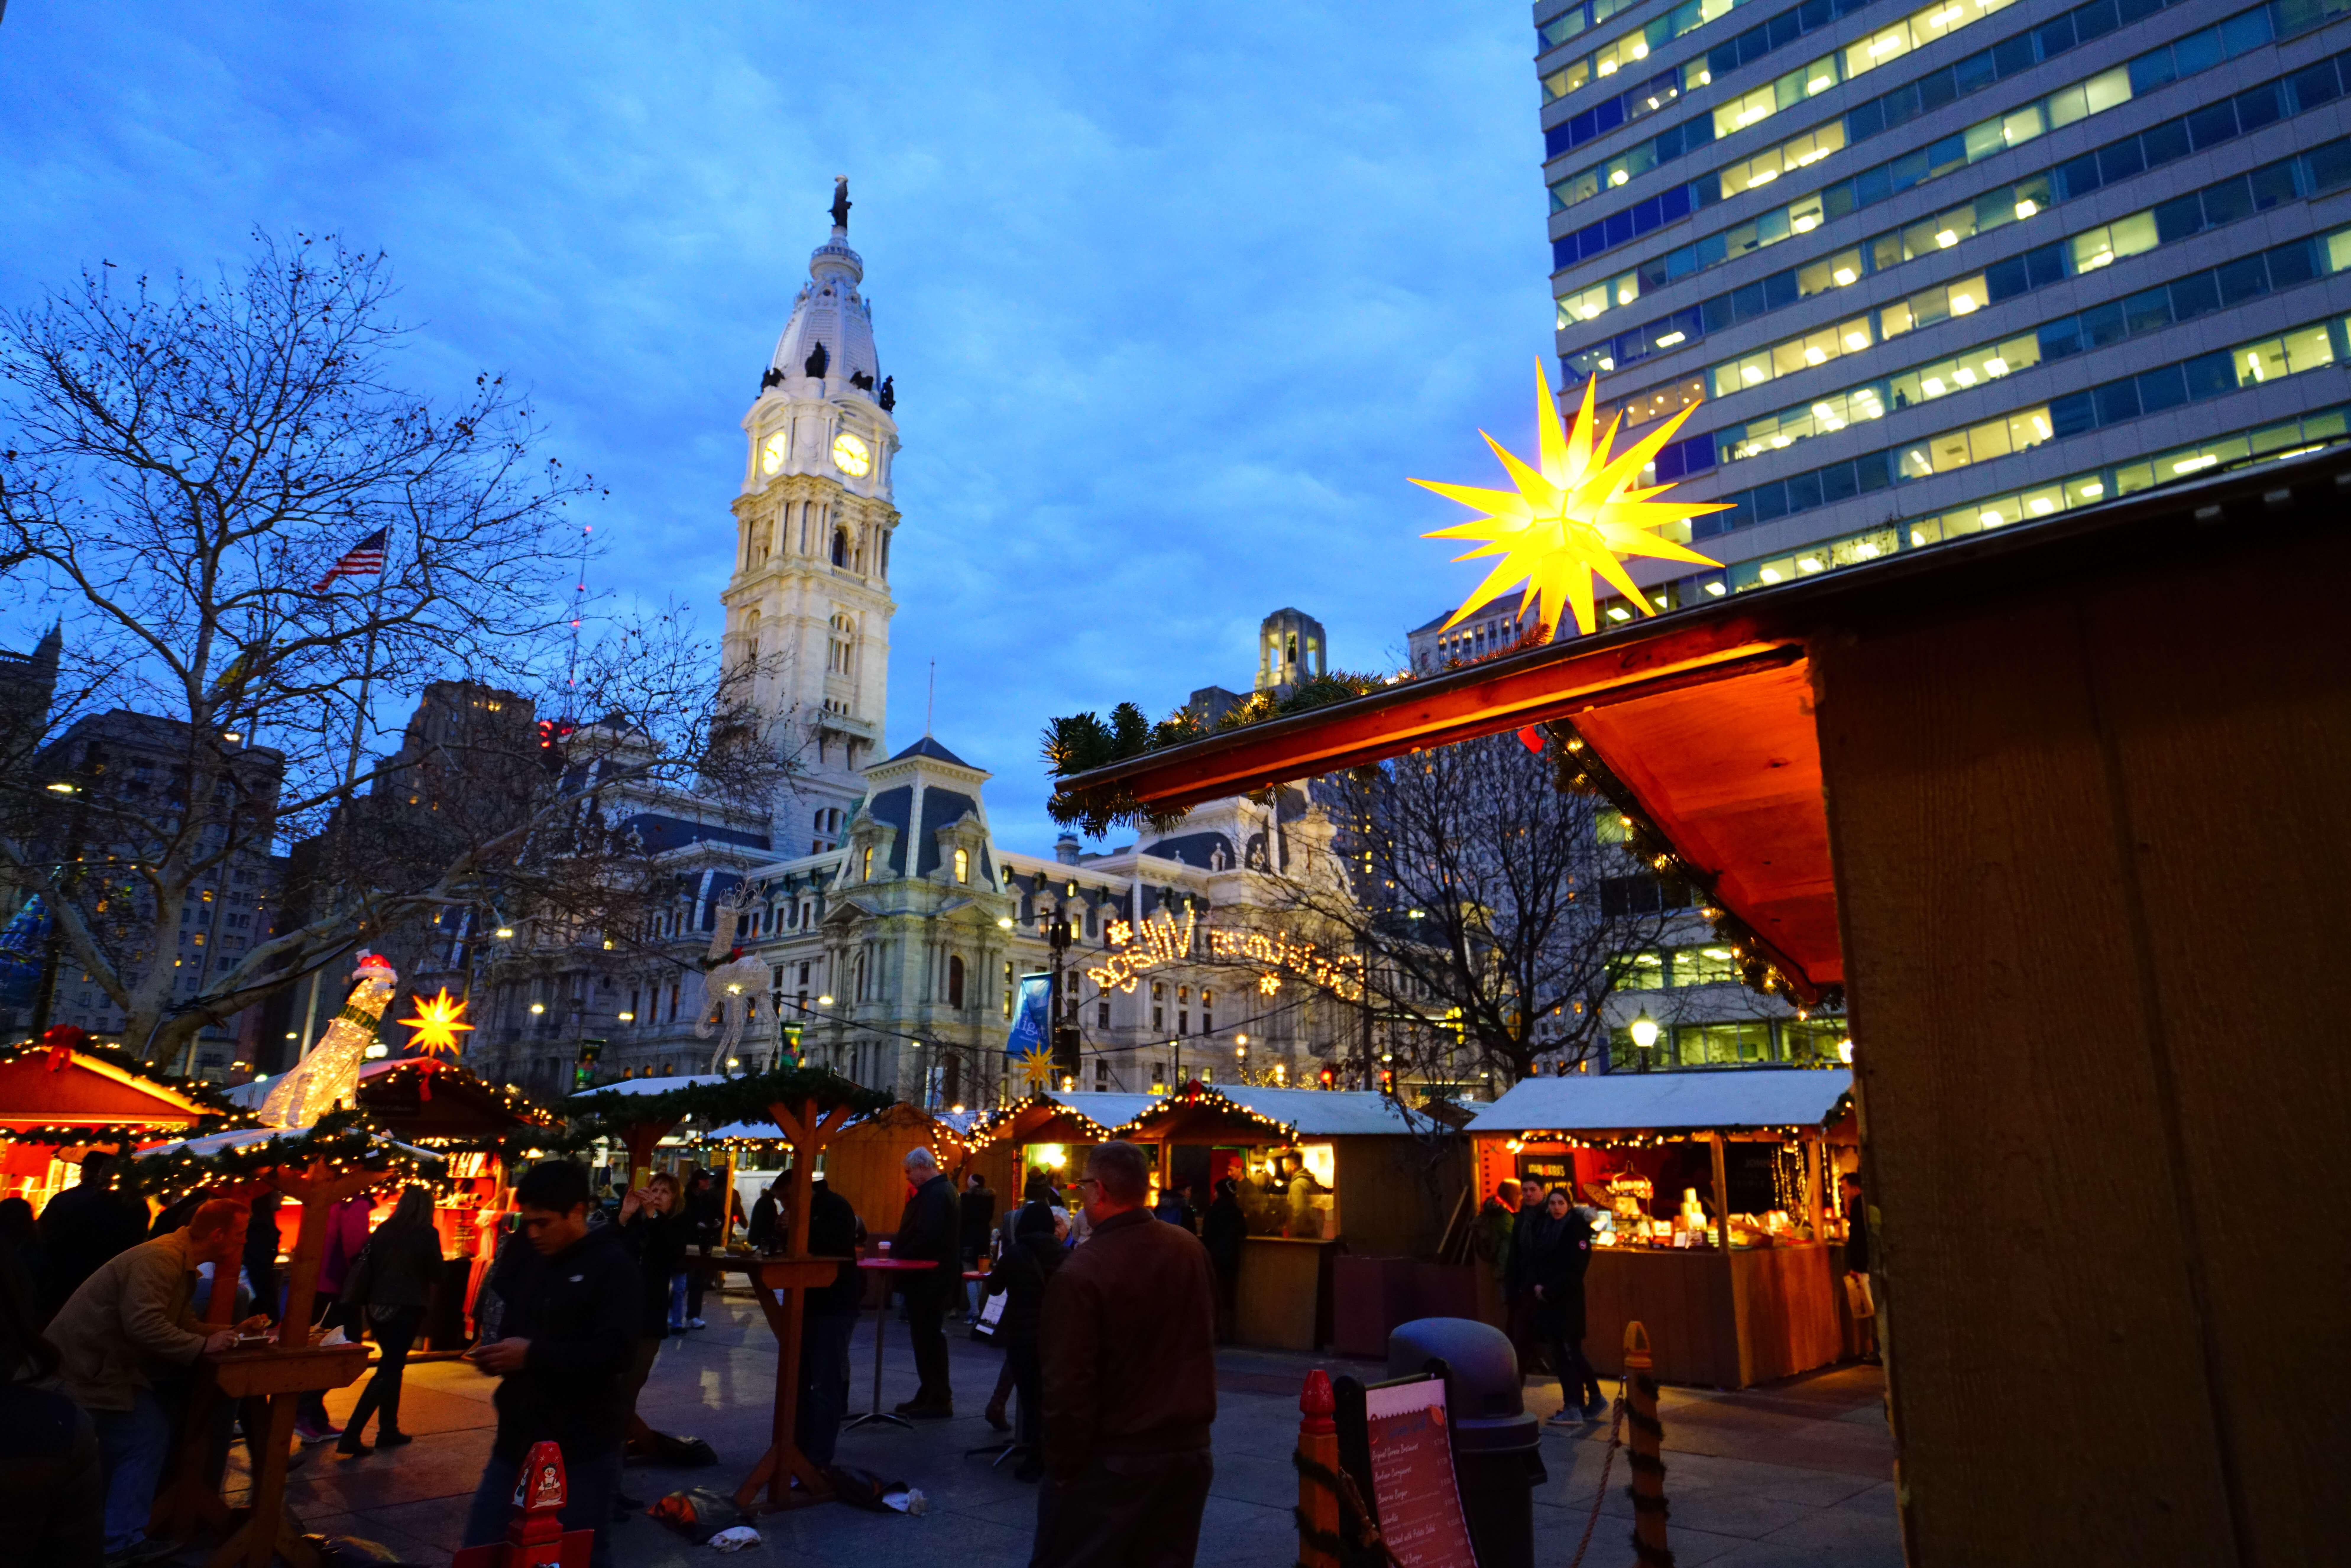 cvphl12-christmas-village-with-city-hall-in-background-credit-christmas-village-in-philadelphia